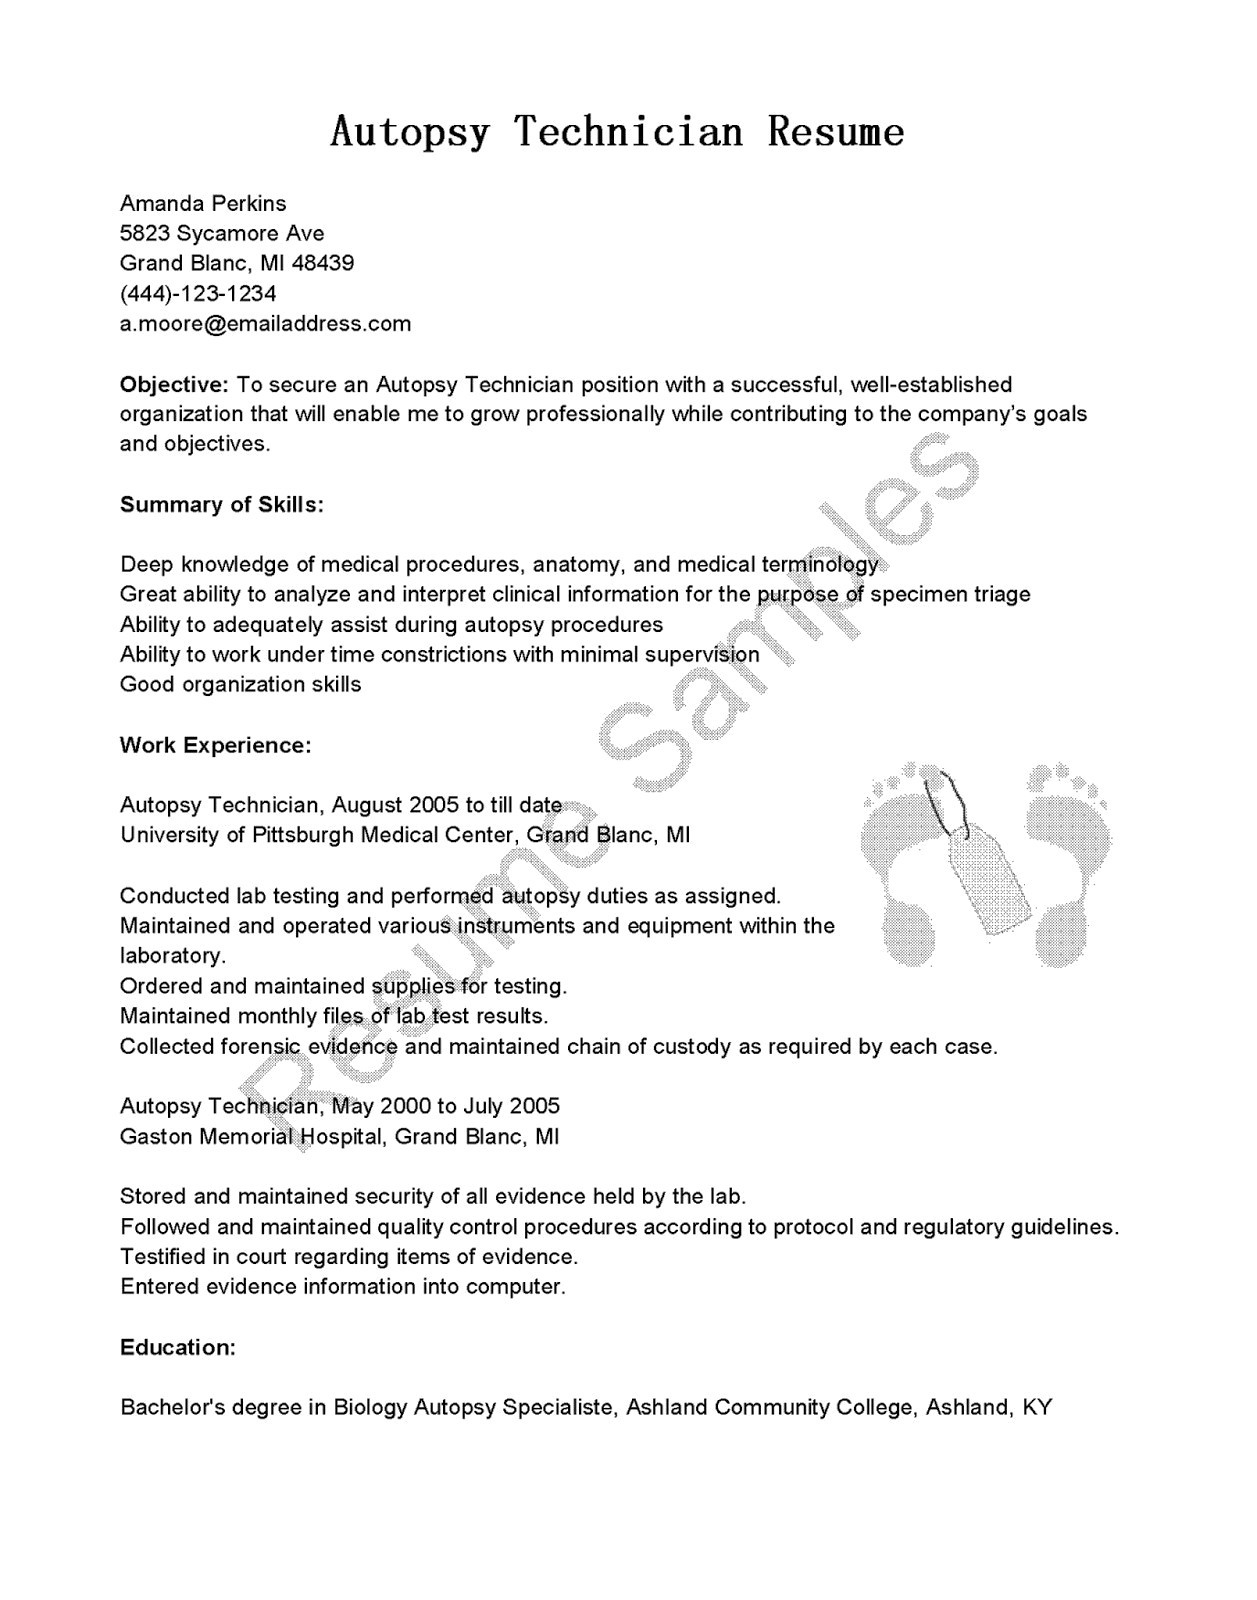 Resume Templates Pages - Resume Template for Pages Luxury Job Application Resume New Best